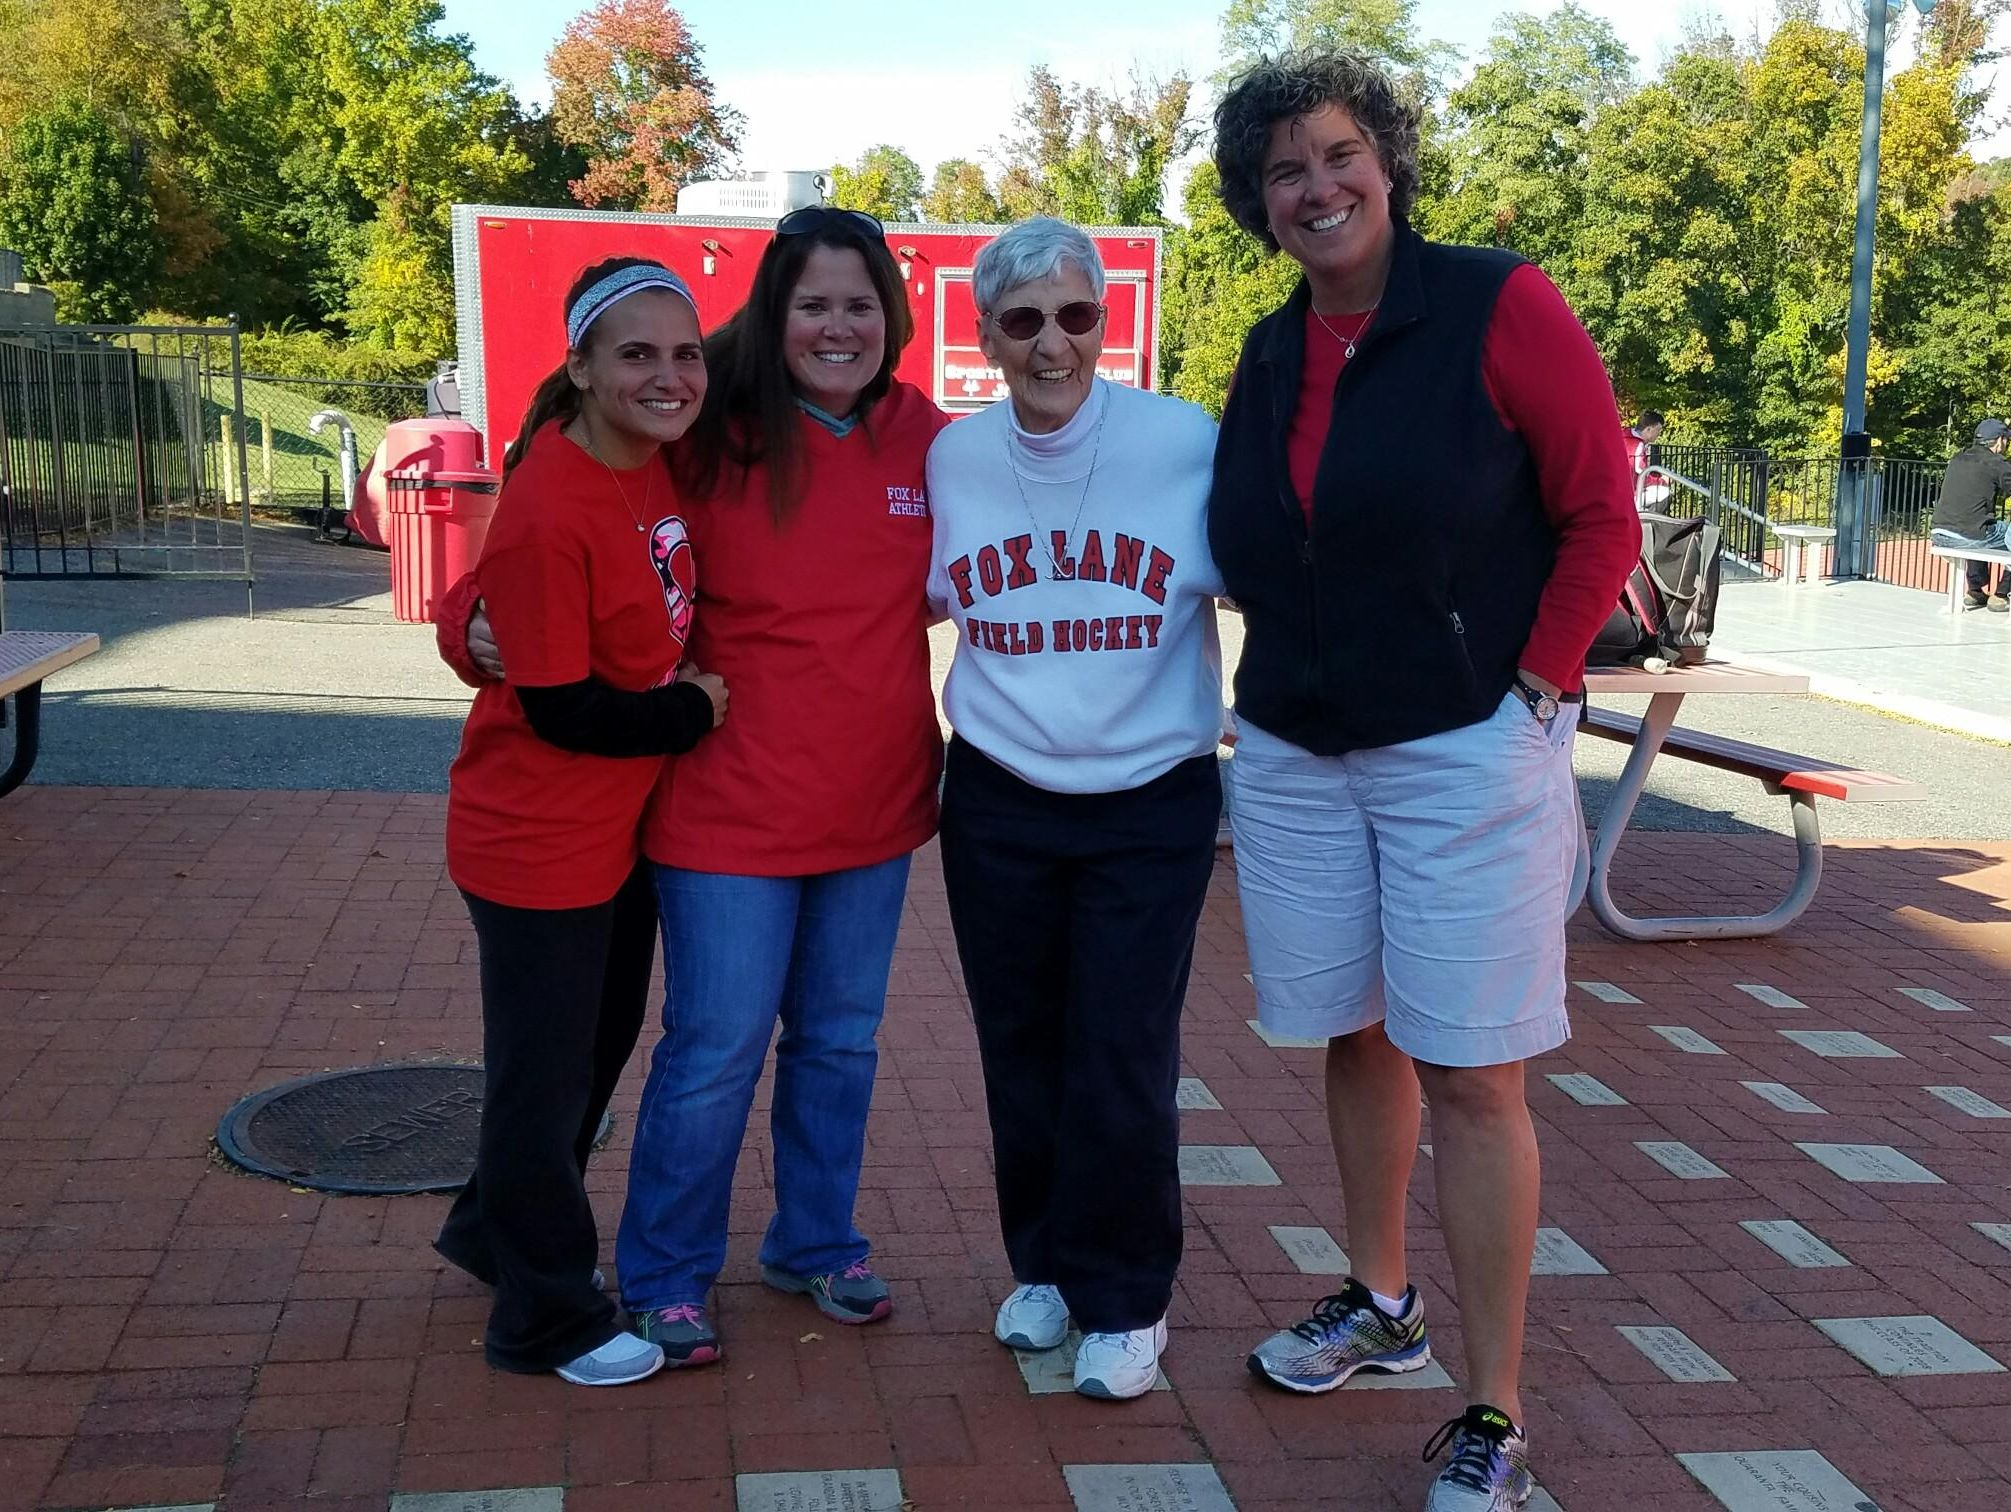 Current Fox Lane coach Kim Gigante and former coaches Heather Miller, Joanne St. George and Beth Staropoli, Fox Lane's current athletic director.